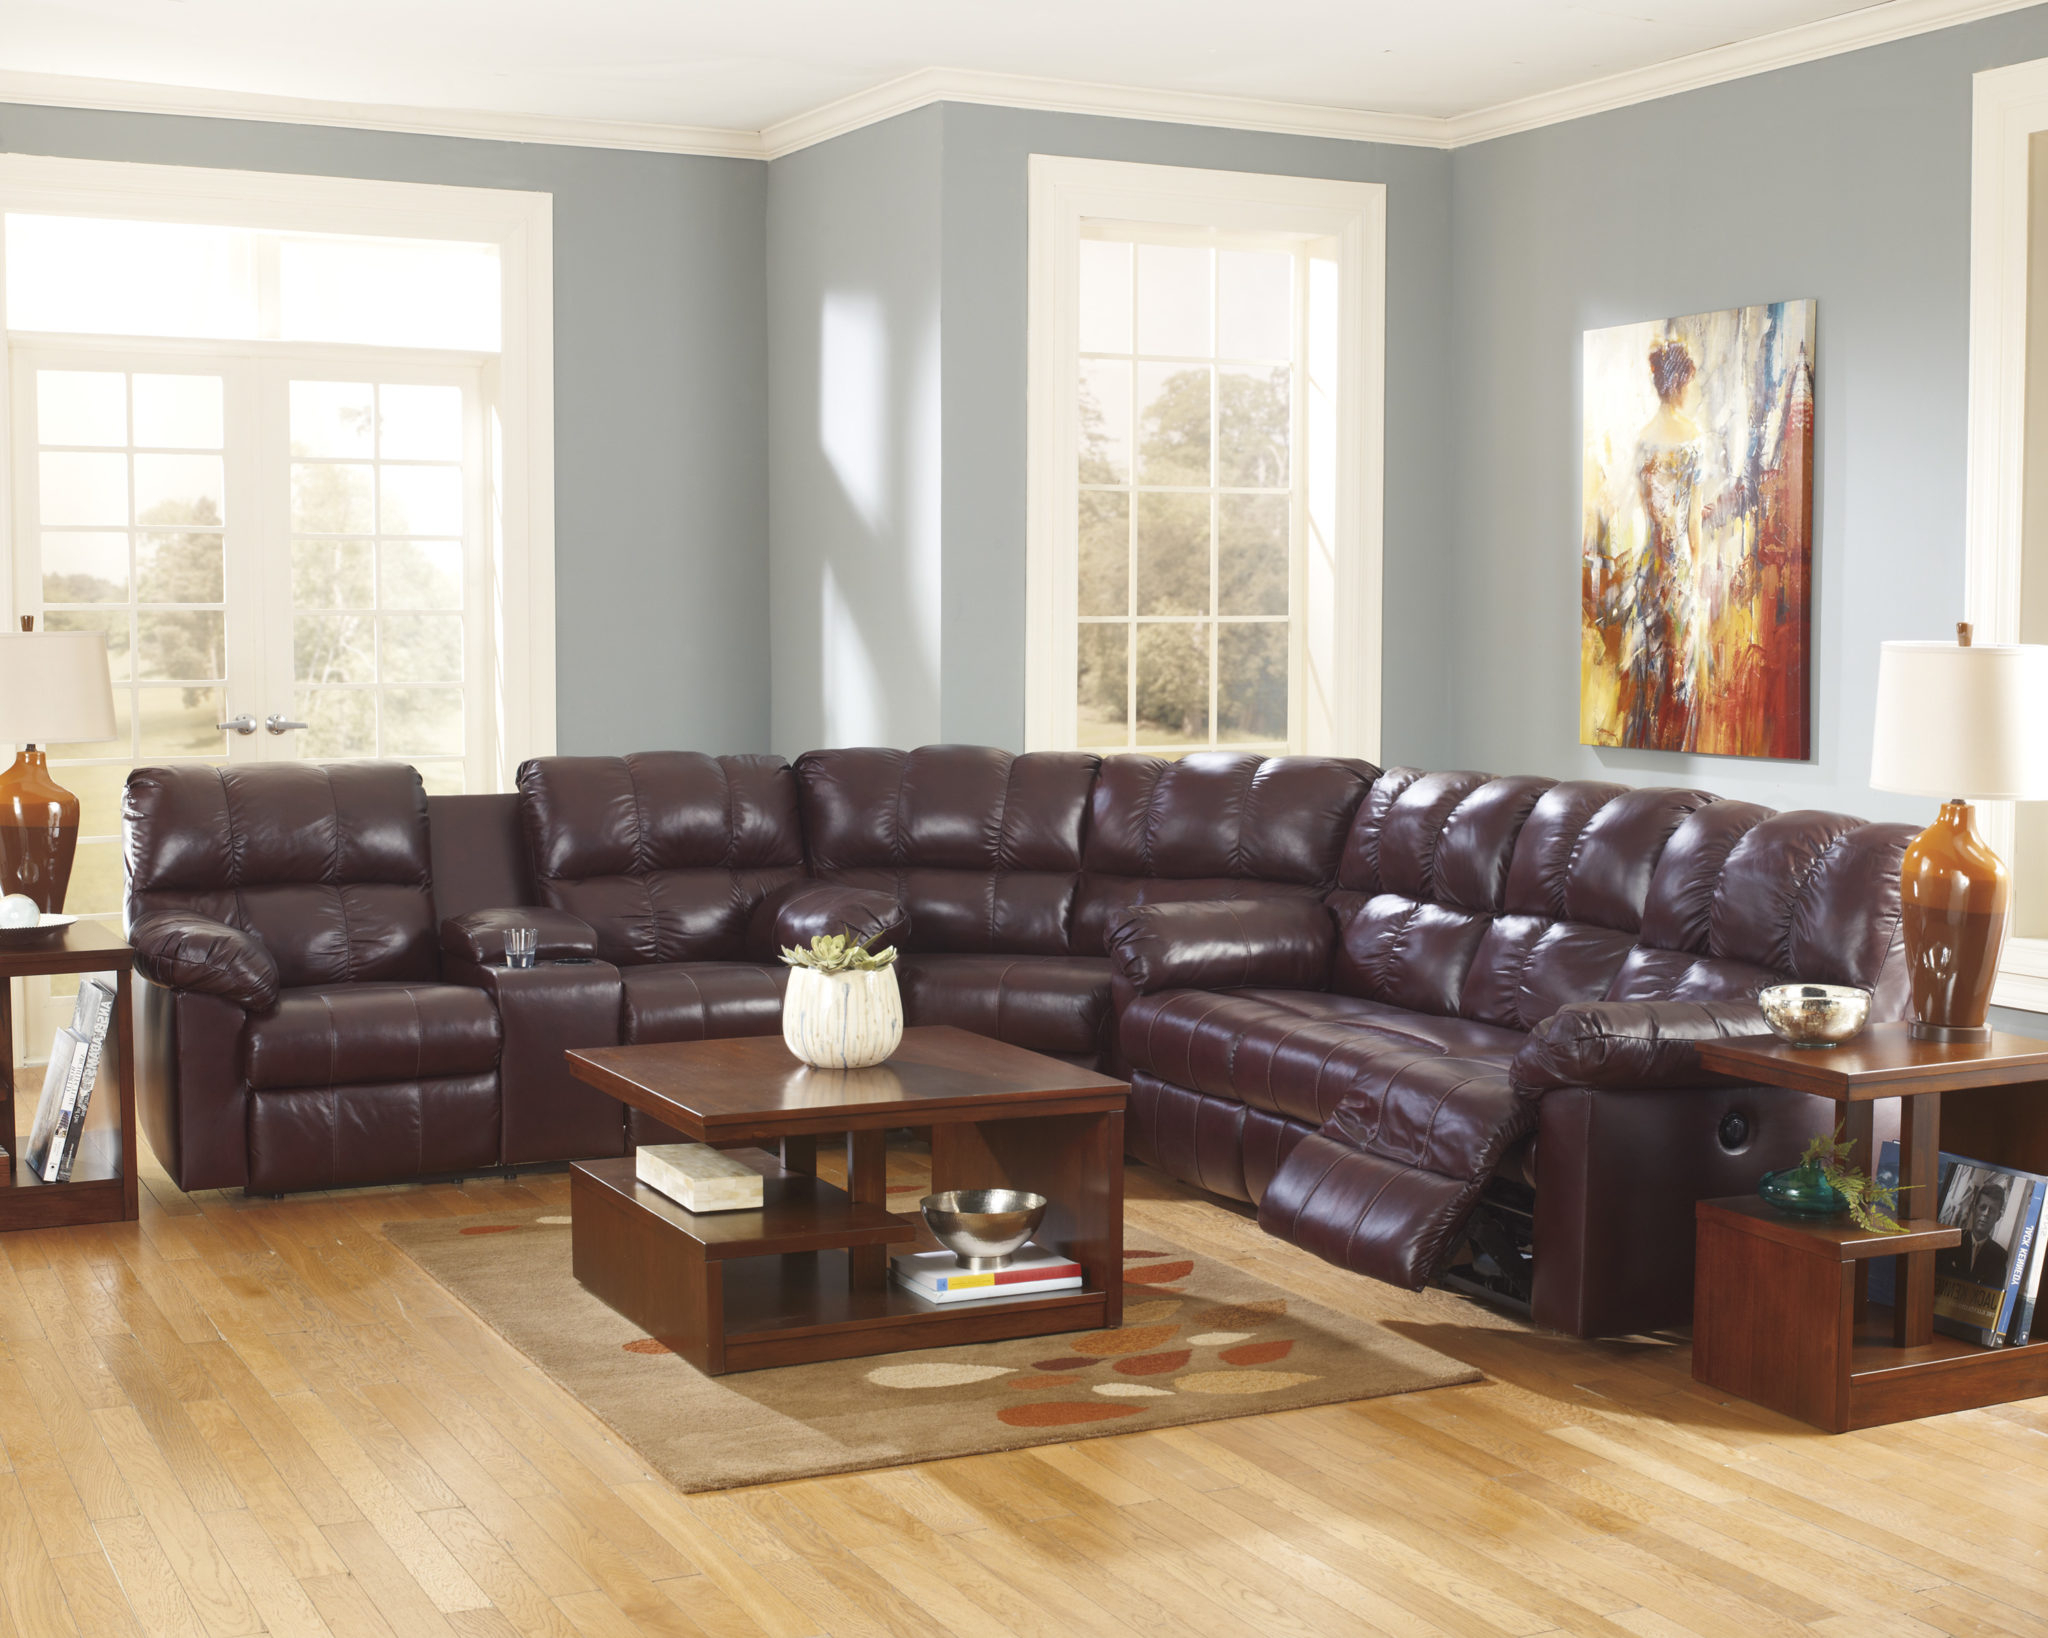 Beautiful Sectional Power Reclining Sofa – Sofas In Well Known Clyde Grey Leather 3 Piece Power Reclining Sectionals With Pwr Hdrst & Usb (View 2 of 20)